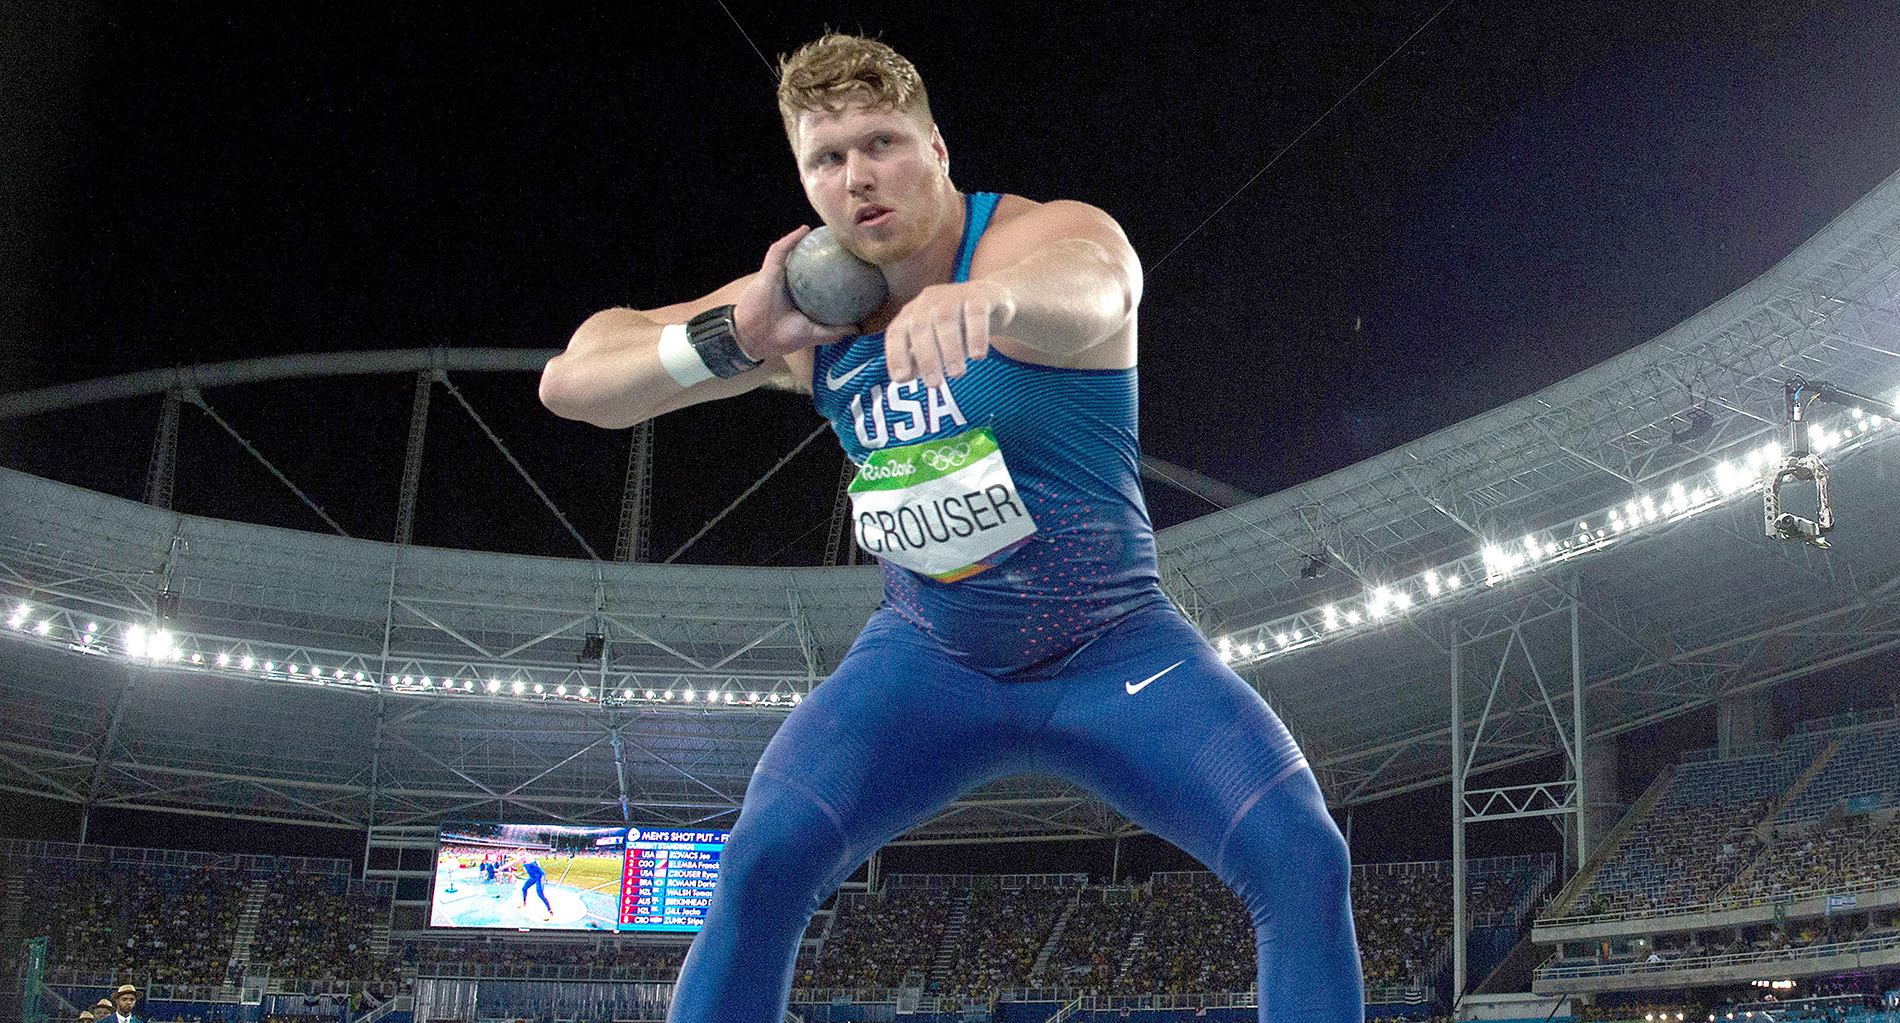 Amid changes Ryan Crouser inches closer to world record